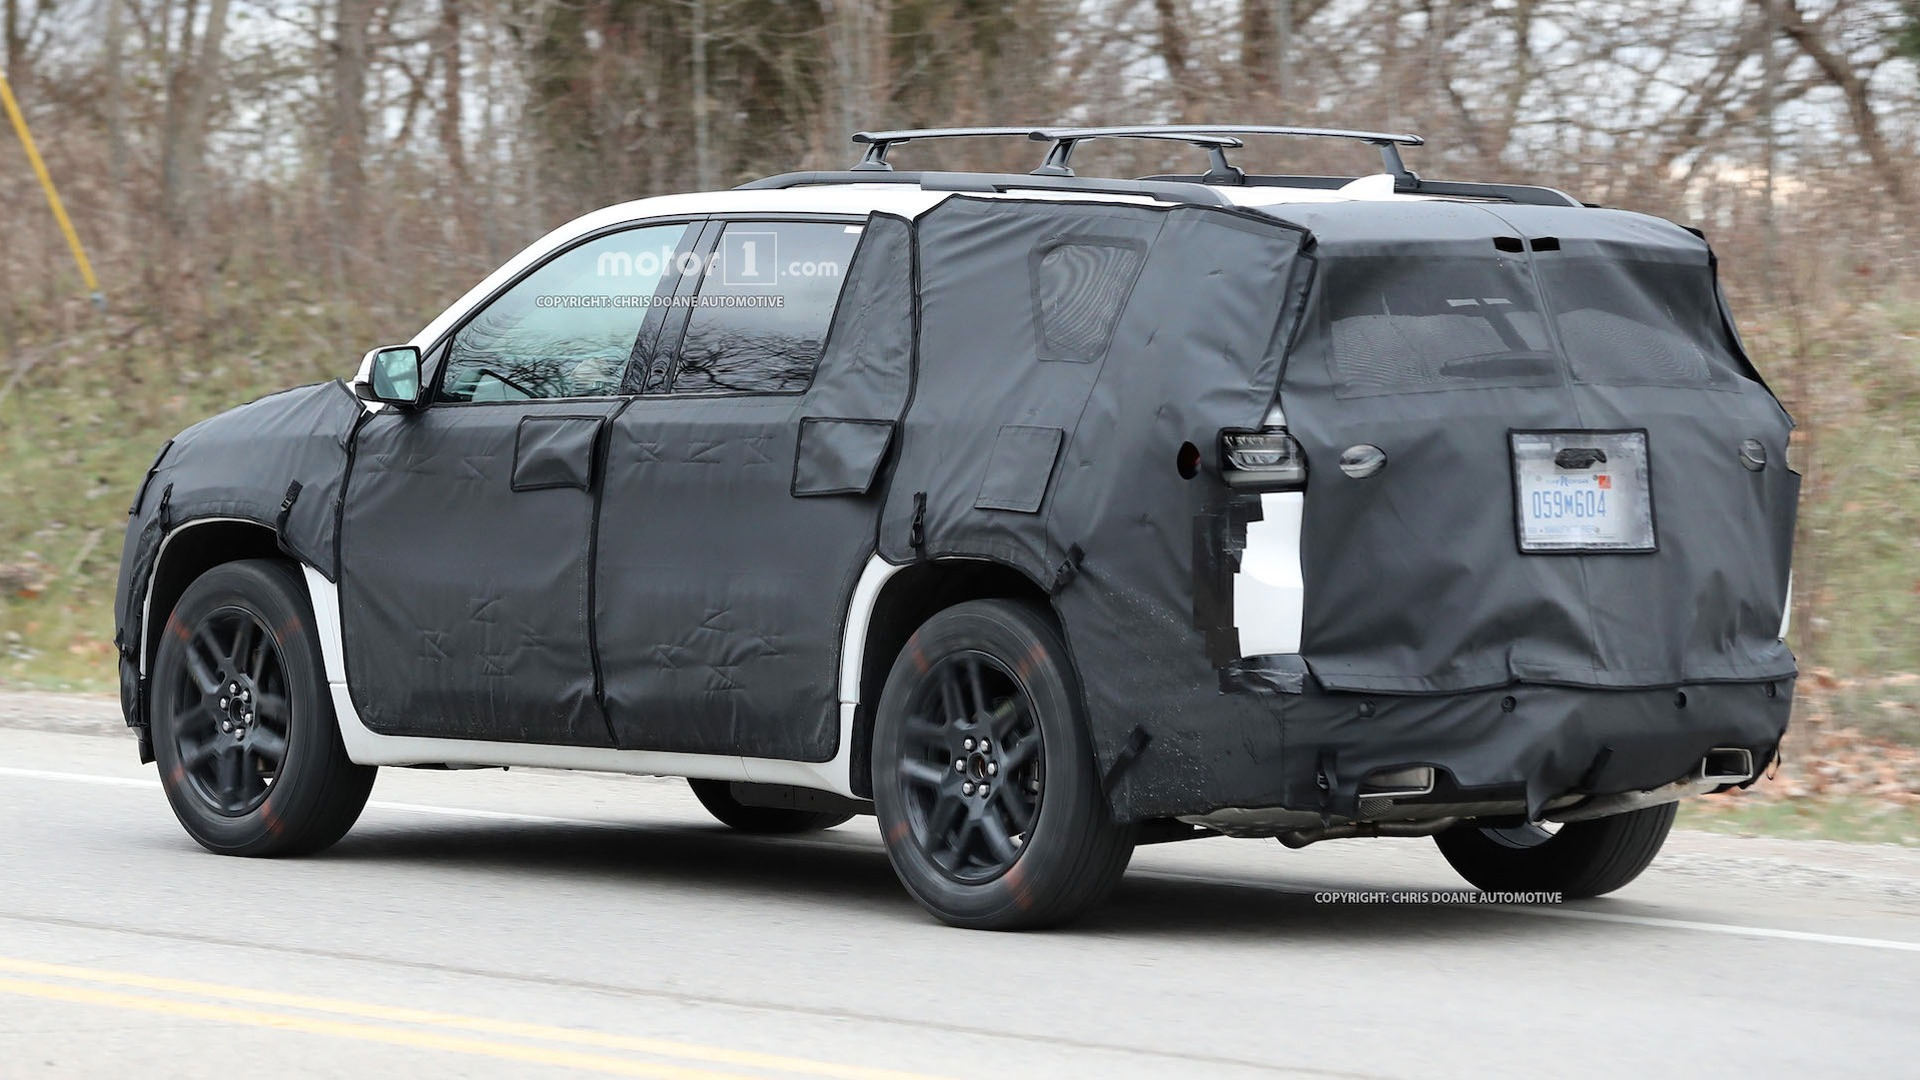 2018-chevy-cuv-spy-photos-10